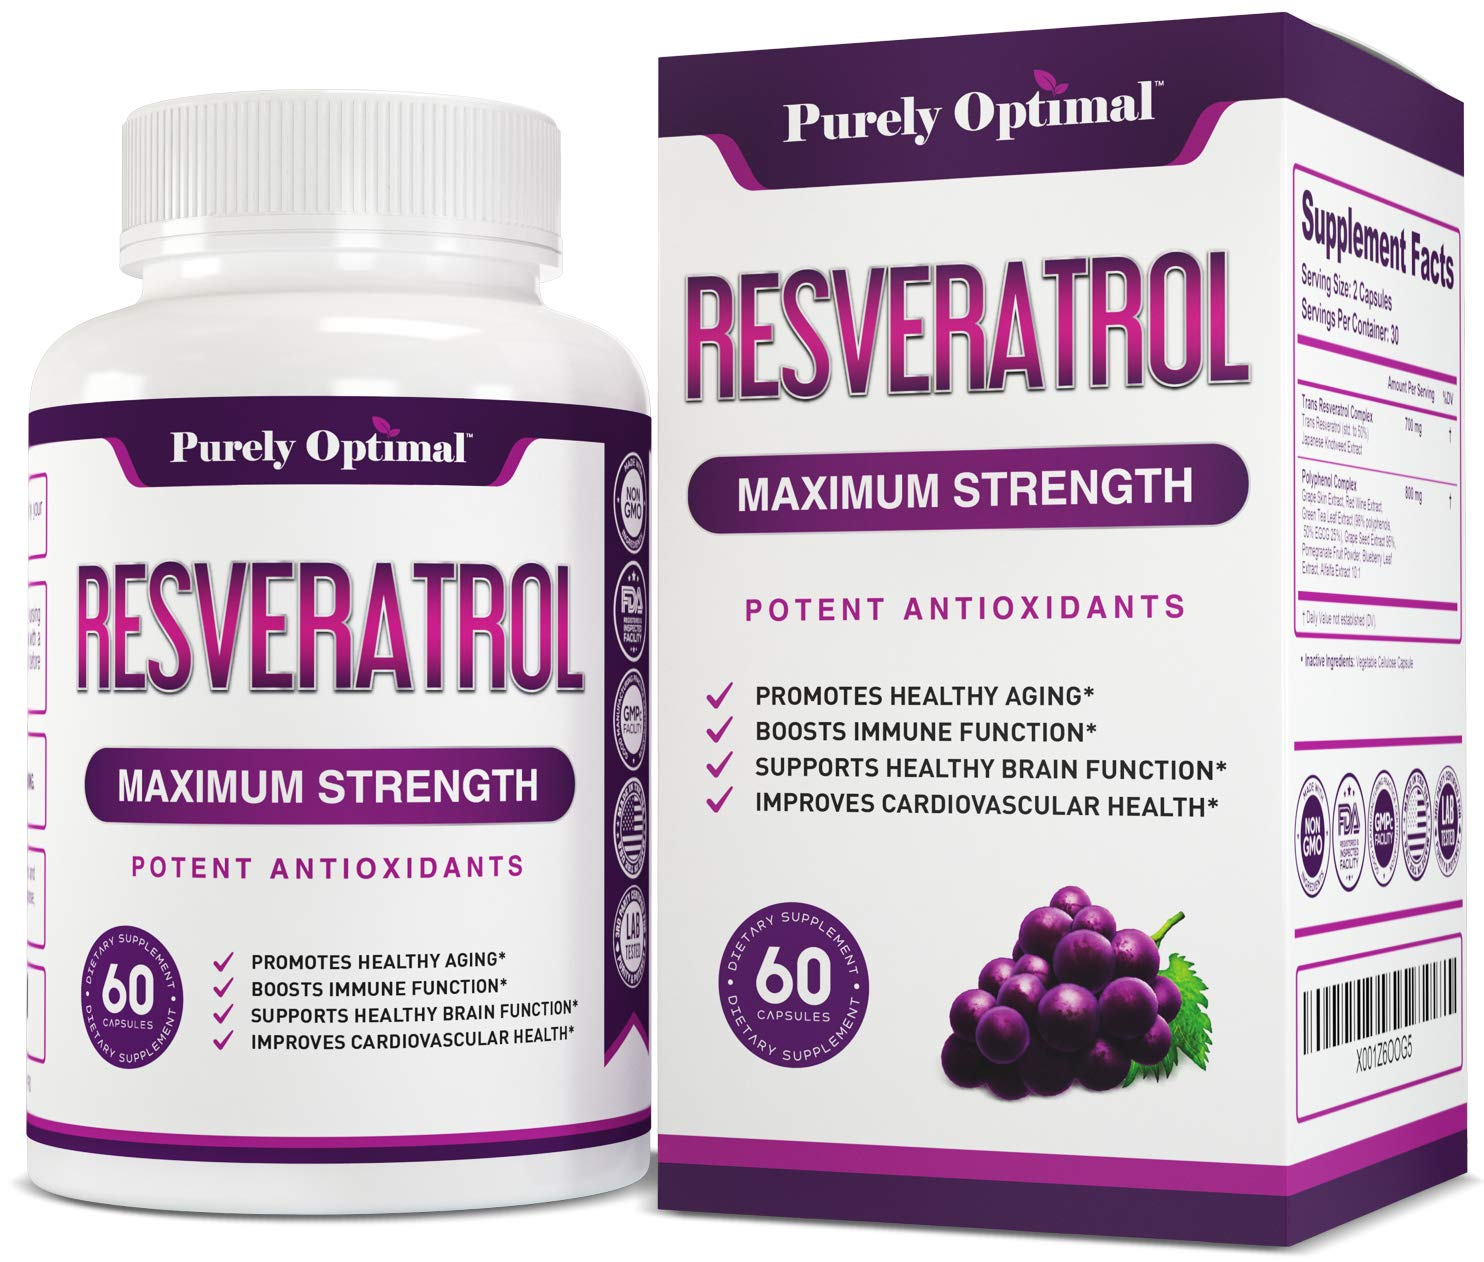 Premium Resveratrol Supplement Max Strength 1500mg (Vegetarian Caps) - Potent Antioxidants, Trans Resveratrol Capsules for Anti-Aging, Brain Function, Heart & Immune Health Supplements - 30 Day Supply by PURELY OPTIMAL